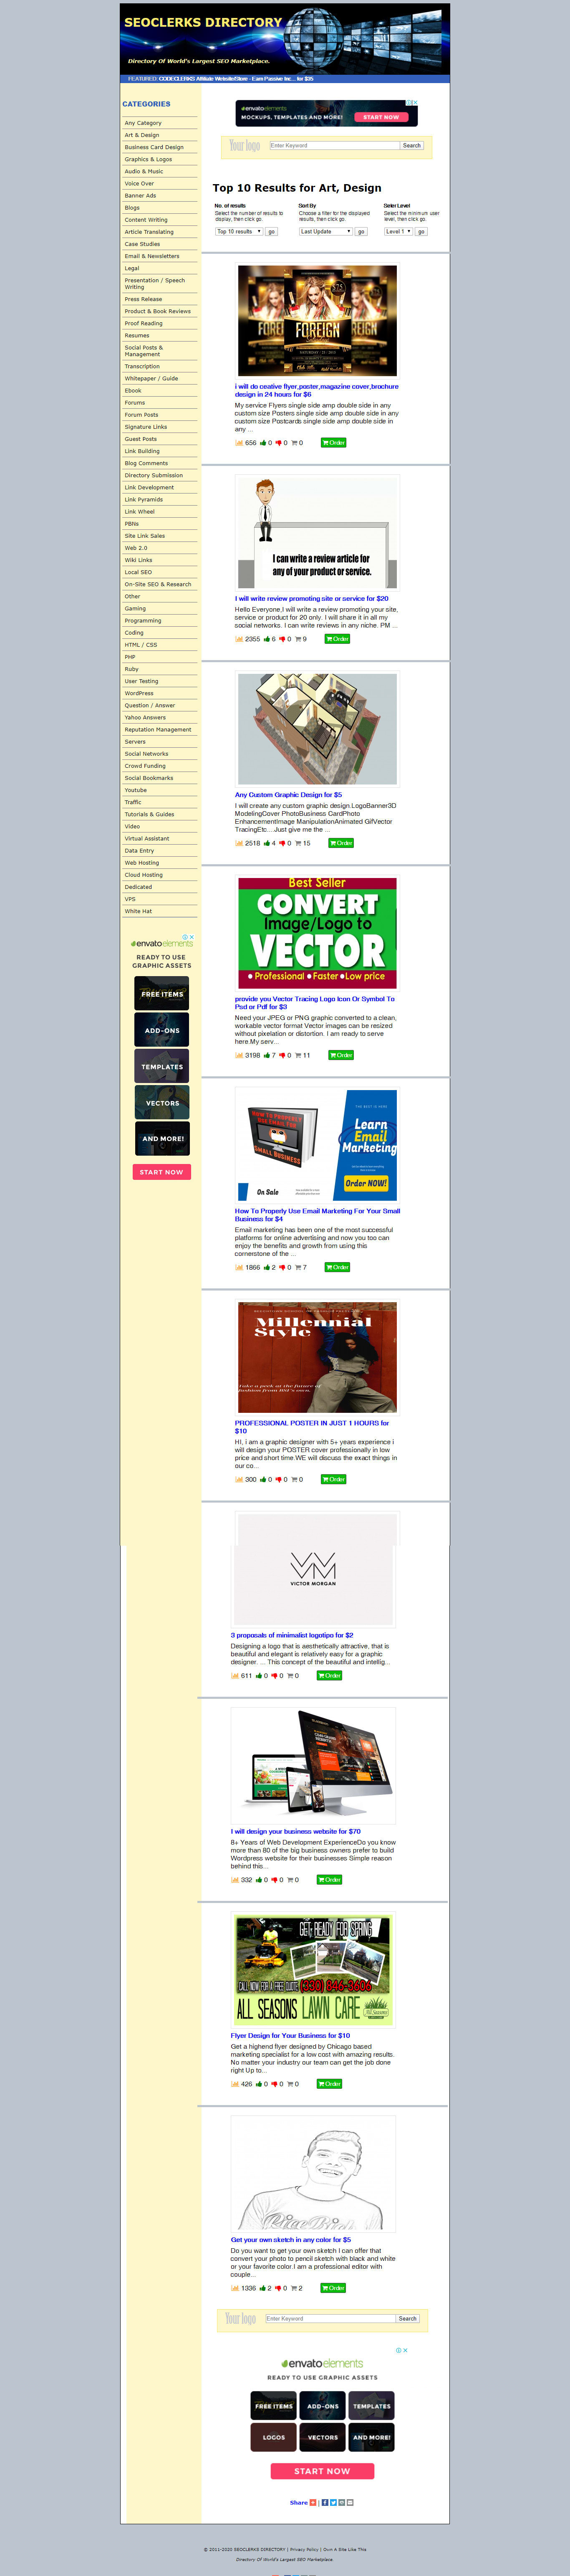 SEOCLERKS Affiliate Directory Website/Store - Earn Passive Income On Autopilot